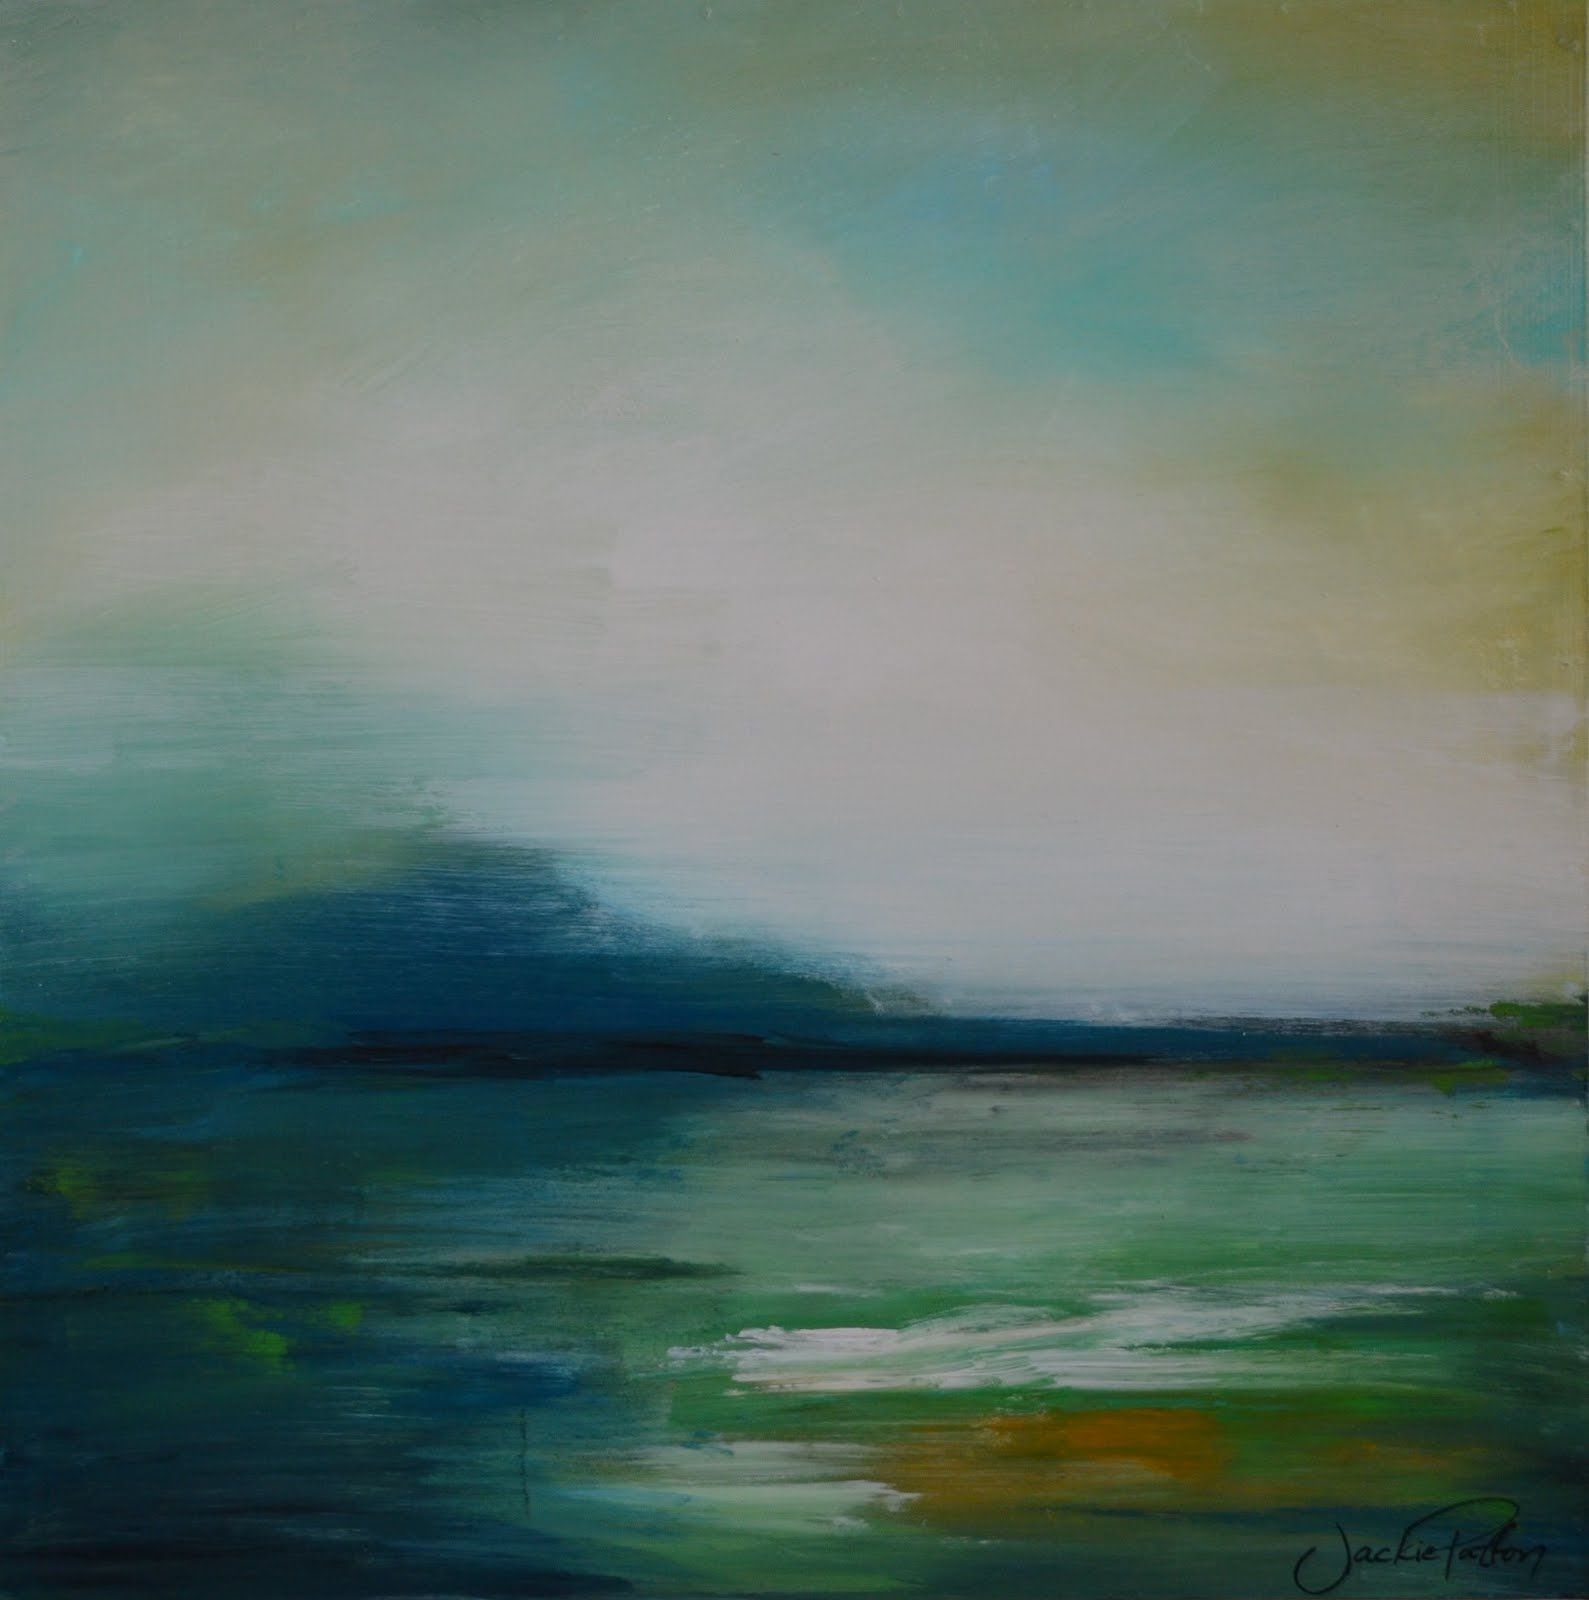 Abstract Nature Paintings Days Of Art Part 3 4 5 Painting Painting Painting Abstract Landscape Painting Abstract Landscape Abstract